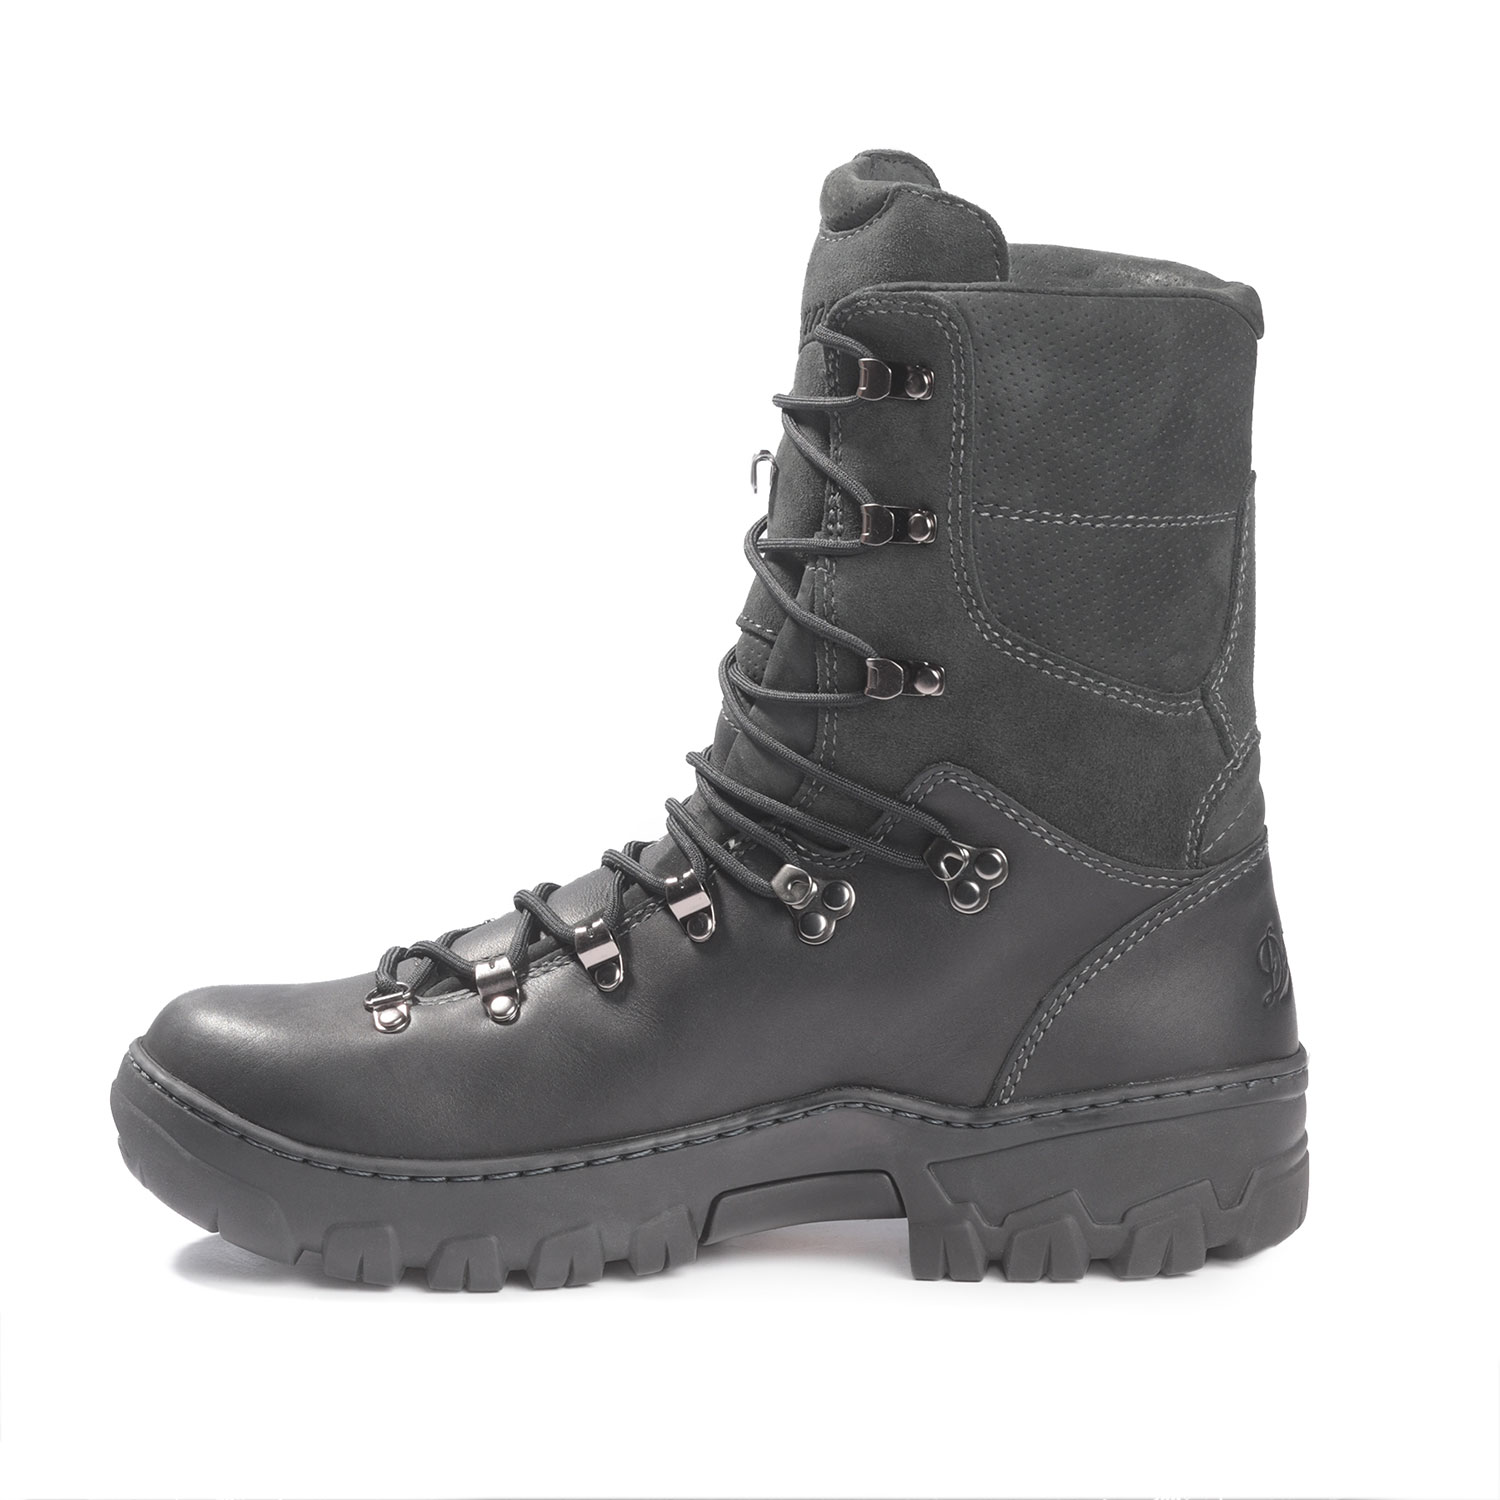 Danner Leather Wildland Tactical Firefighter Boot